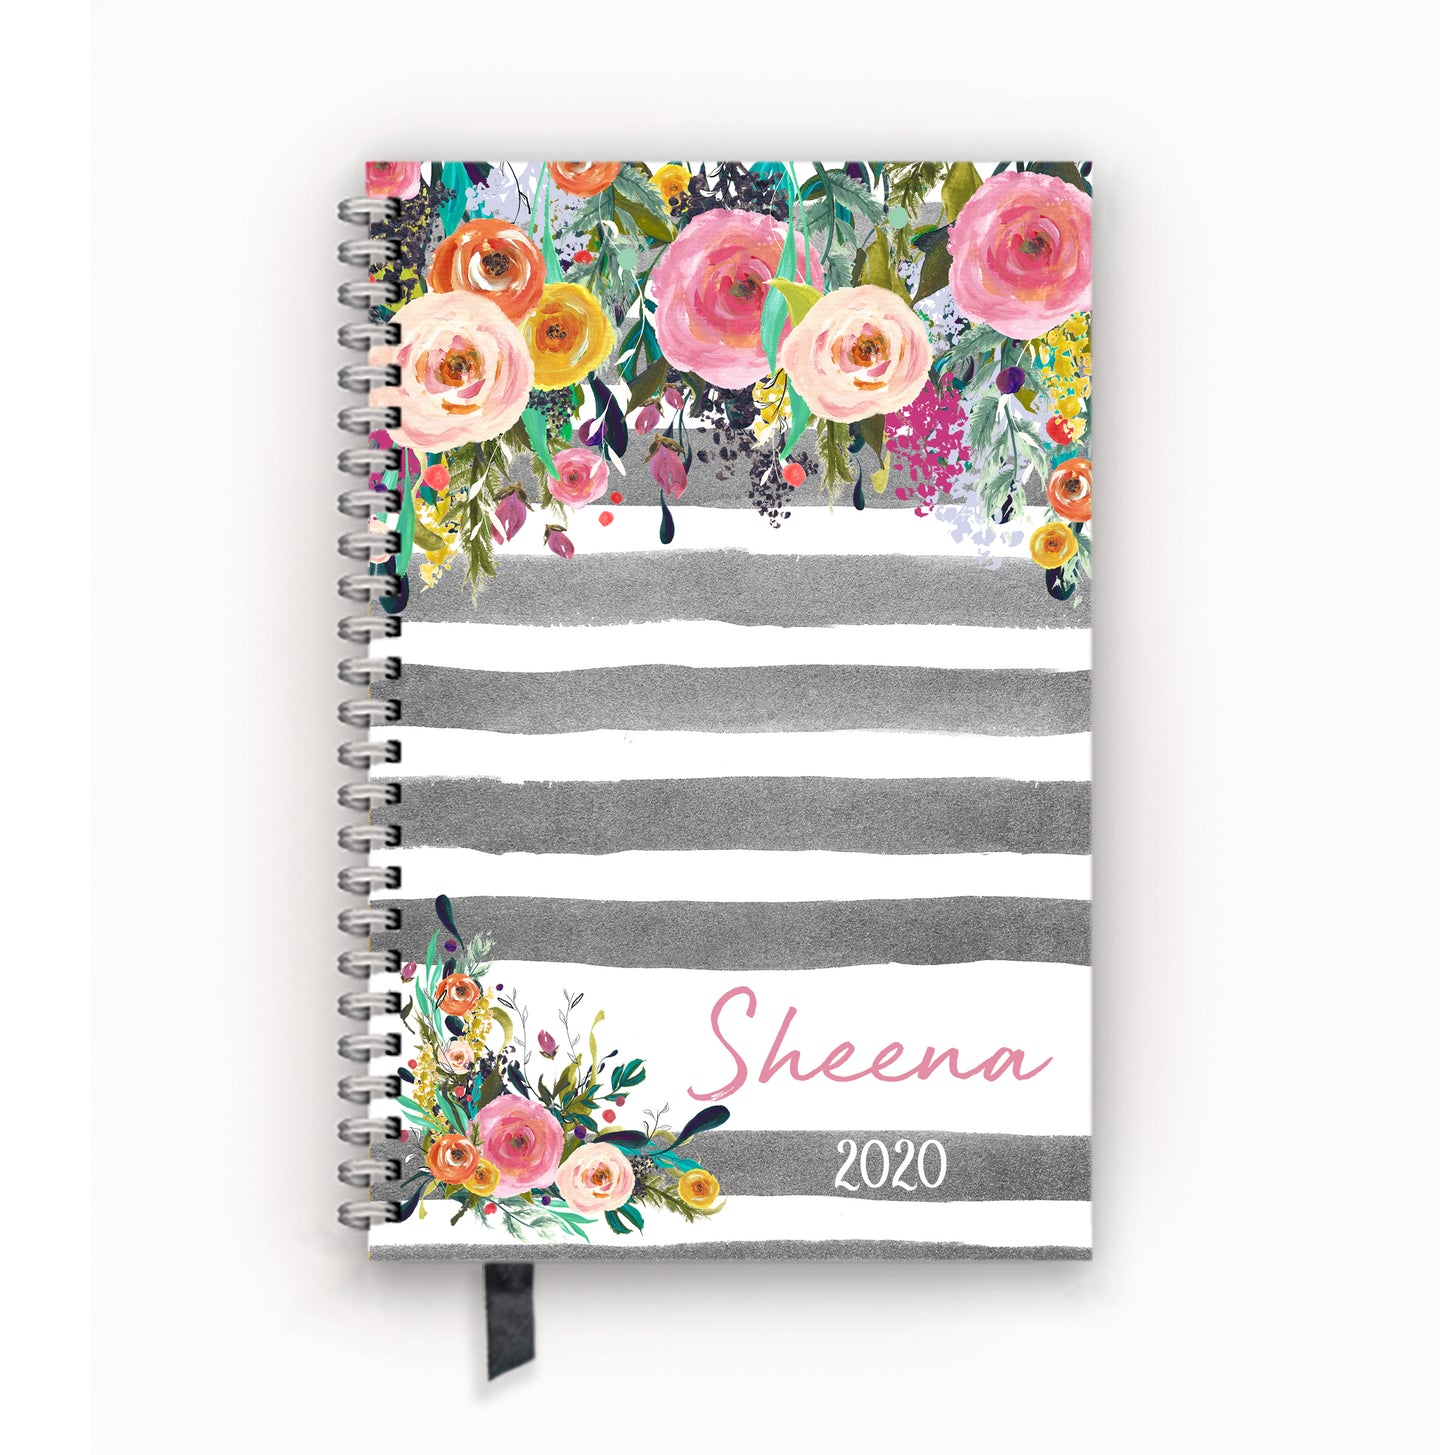 2020 FlexPad Personalized Planner Watercolor Floral on Gray Stripes